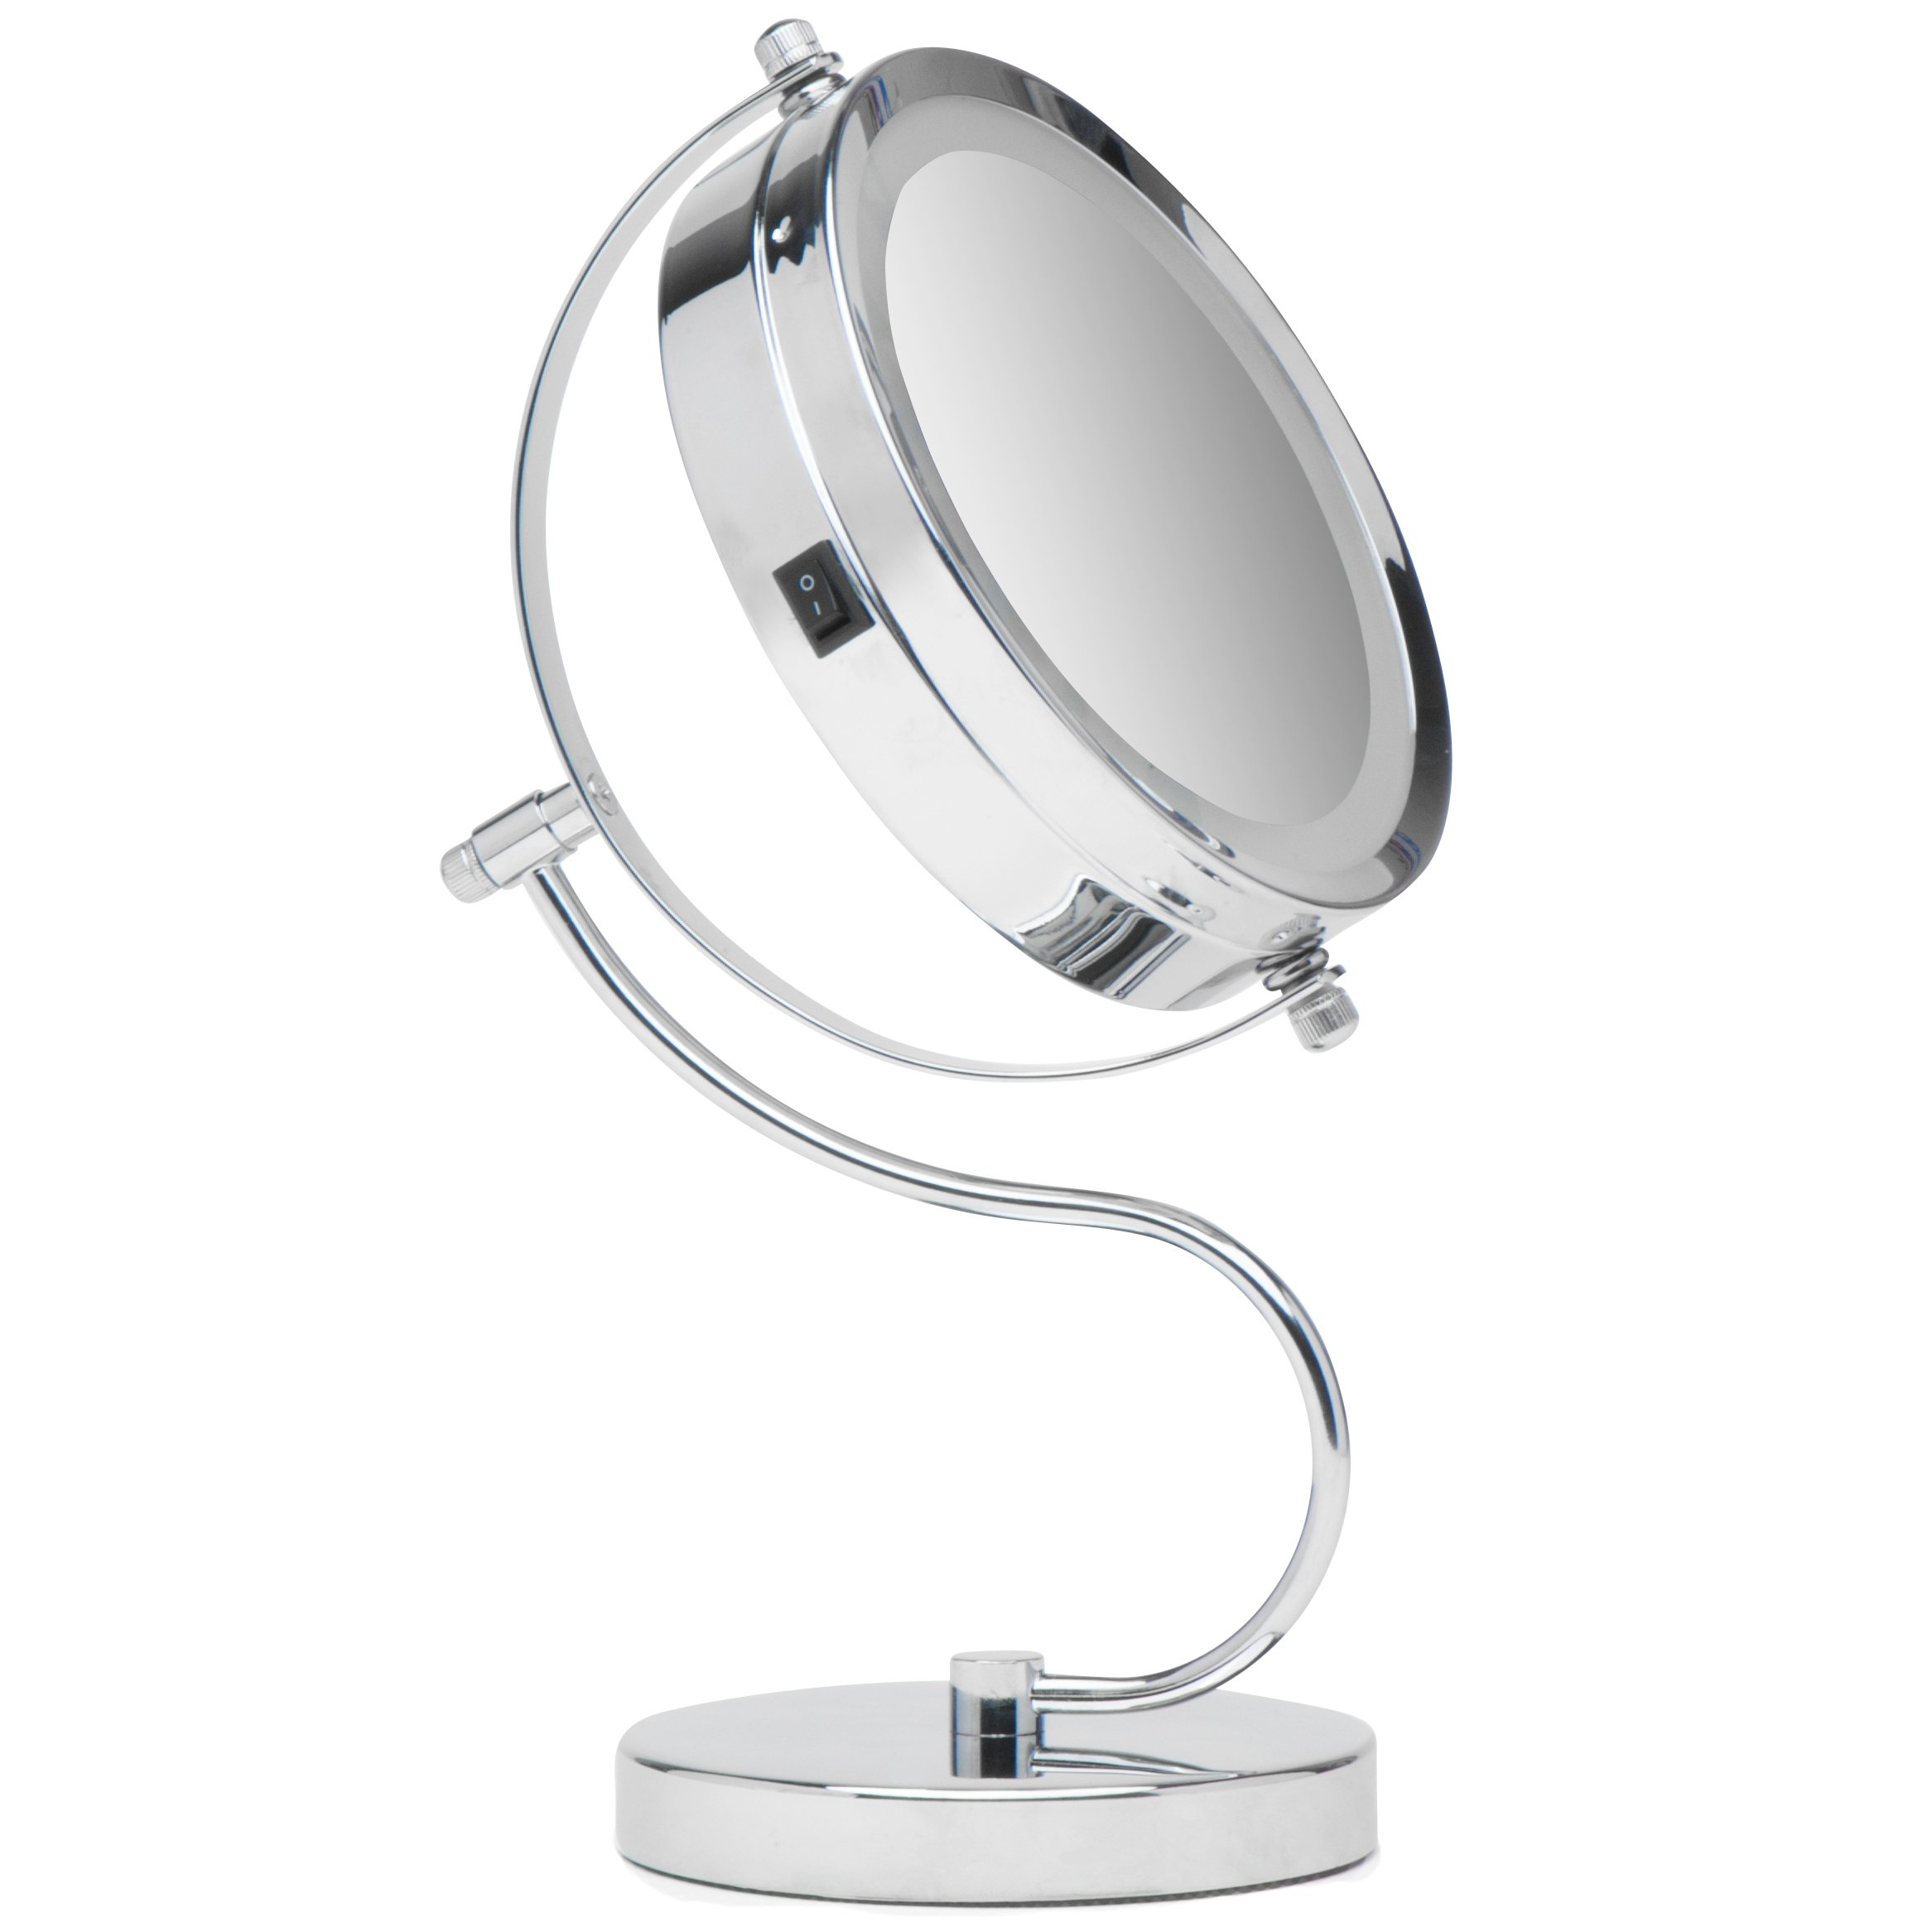 Mirrorvana Bright & Curvy Double-Sided LED Lighted Makeup Mirror w/1 x 3X Magnification for Vanity Countertop, 6-Inch